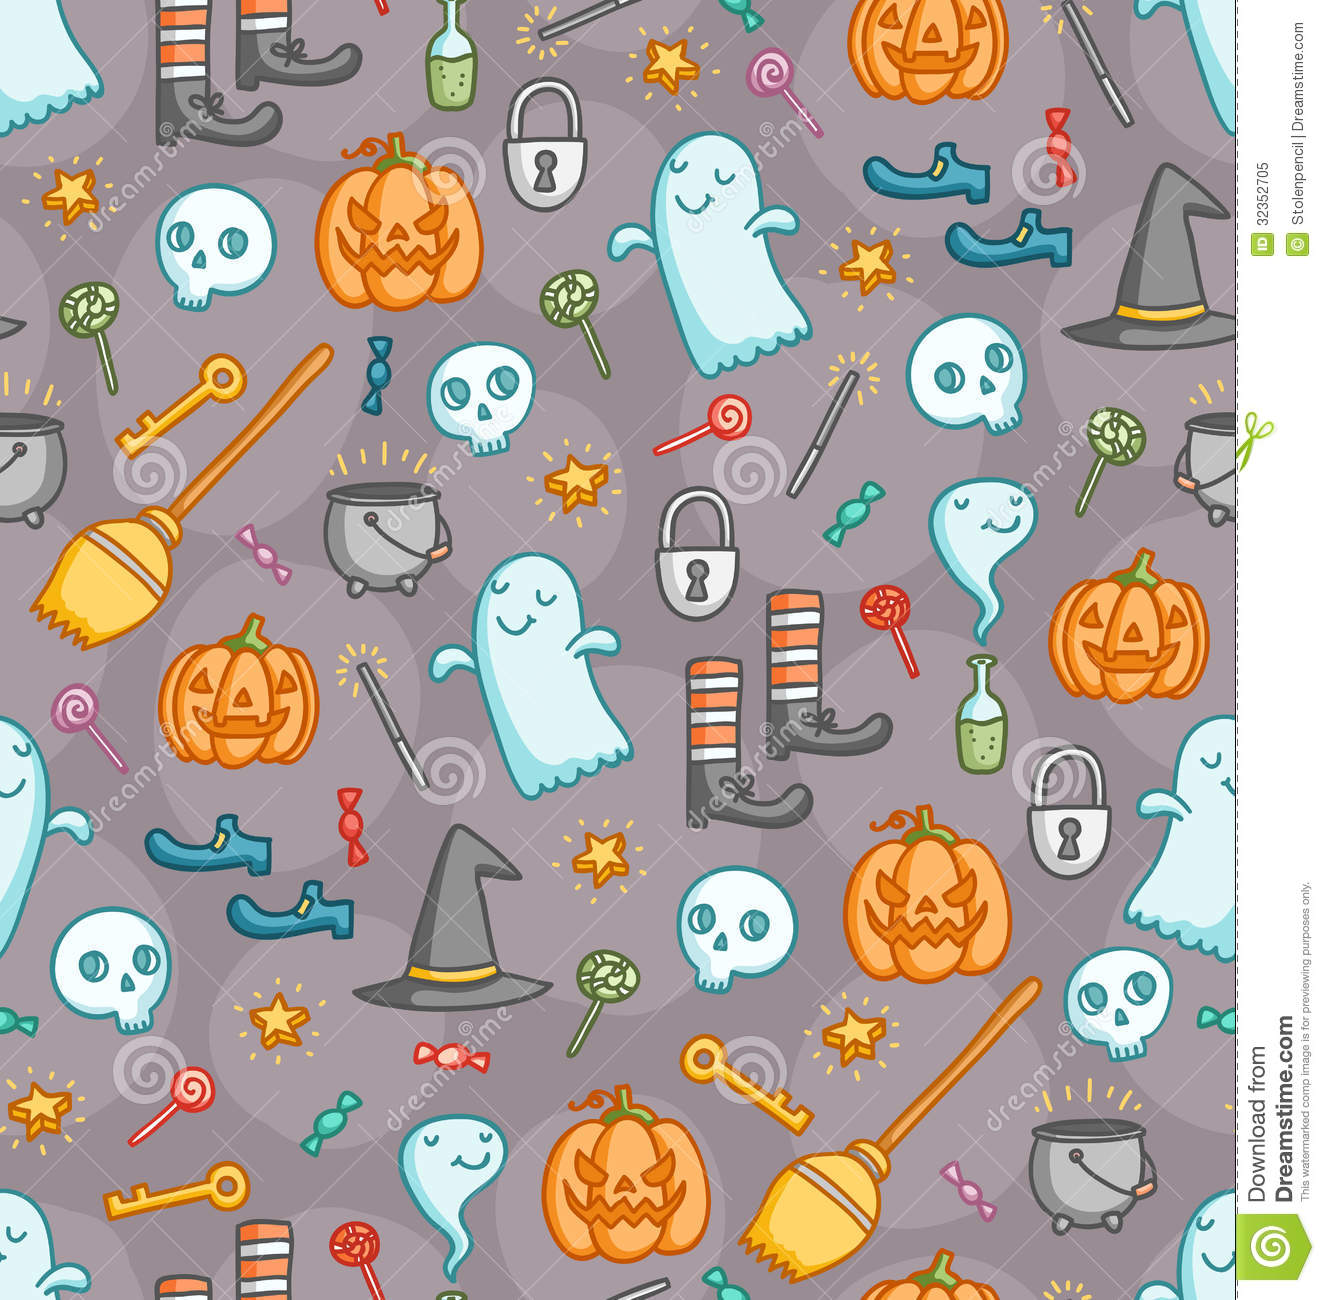 Fall Witch Wallpaper Halloween Doodle Seamless Pattern In Color Royalty Free